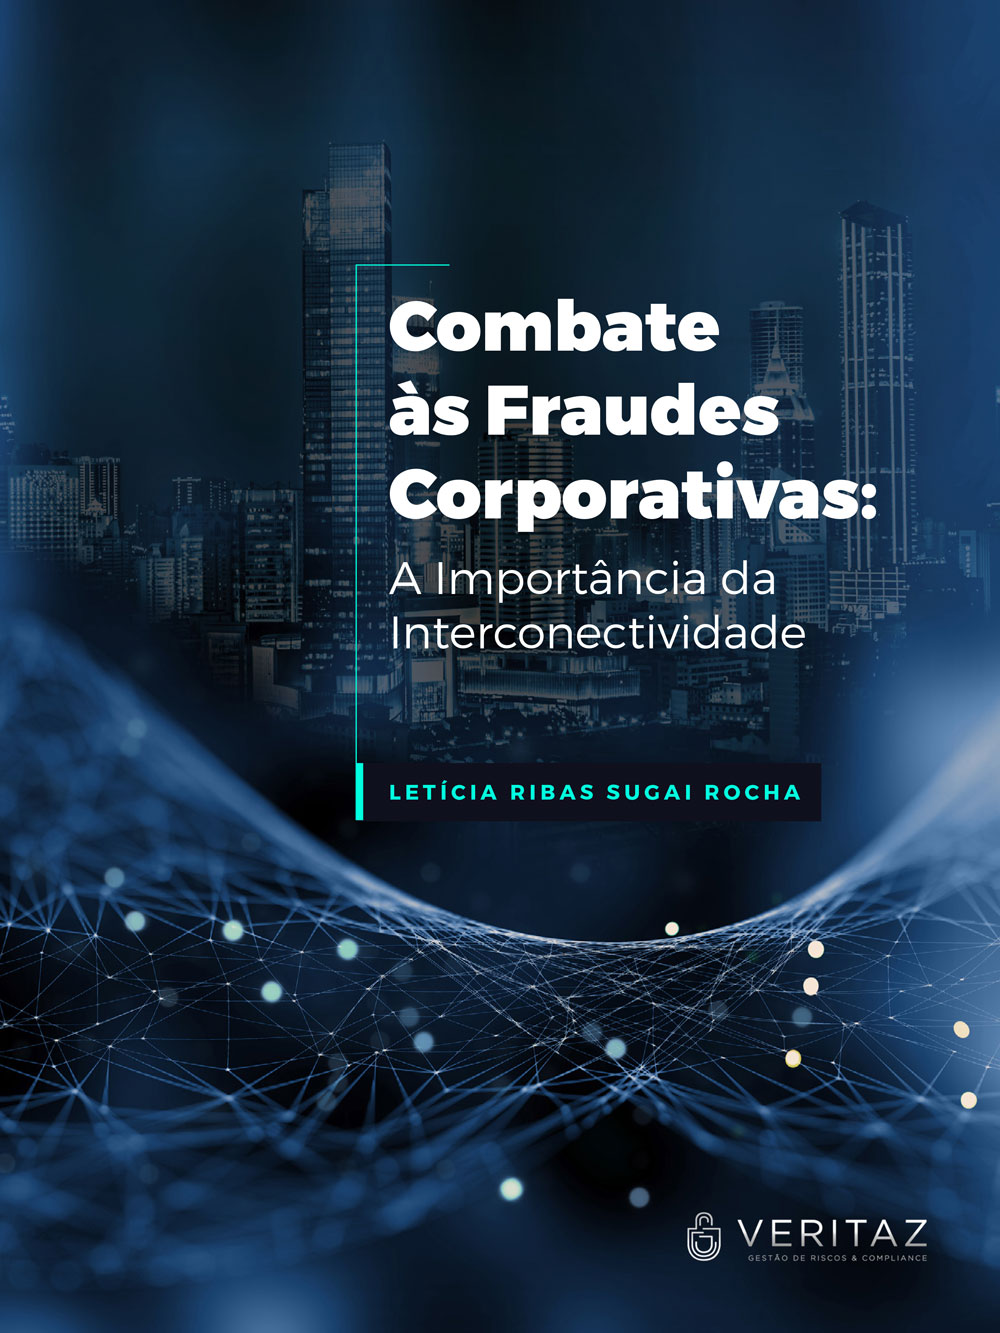 Capa do ebook de Letícia Sugai sobre fraudes corporativas